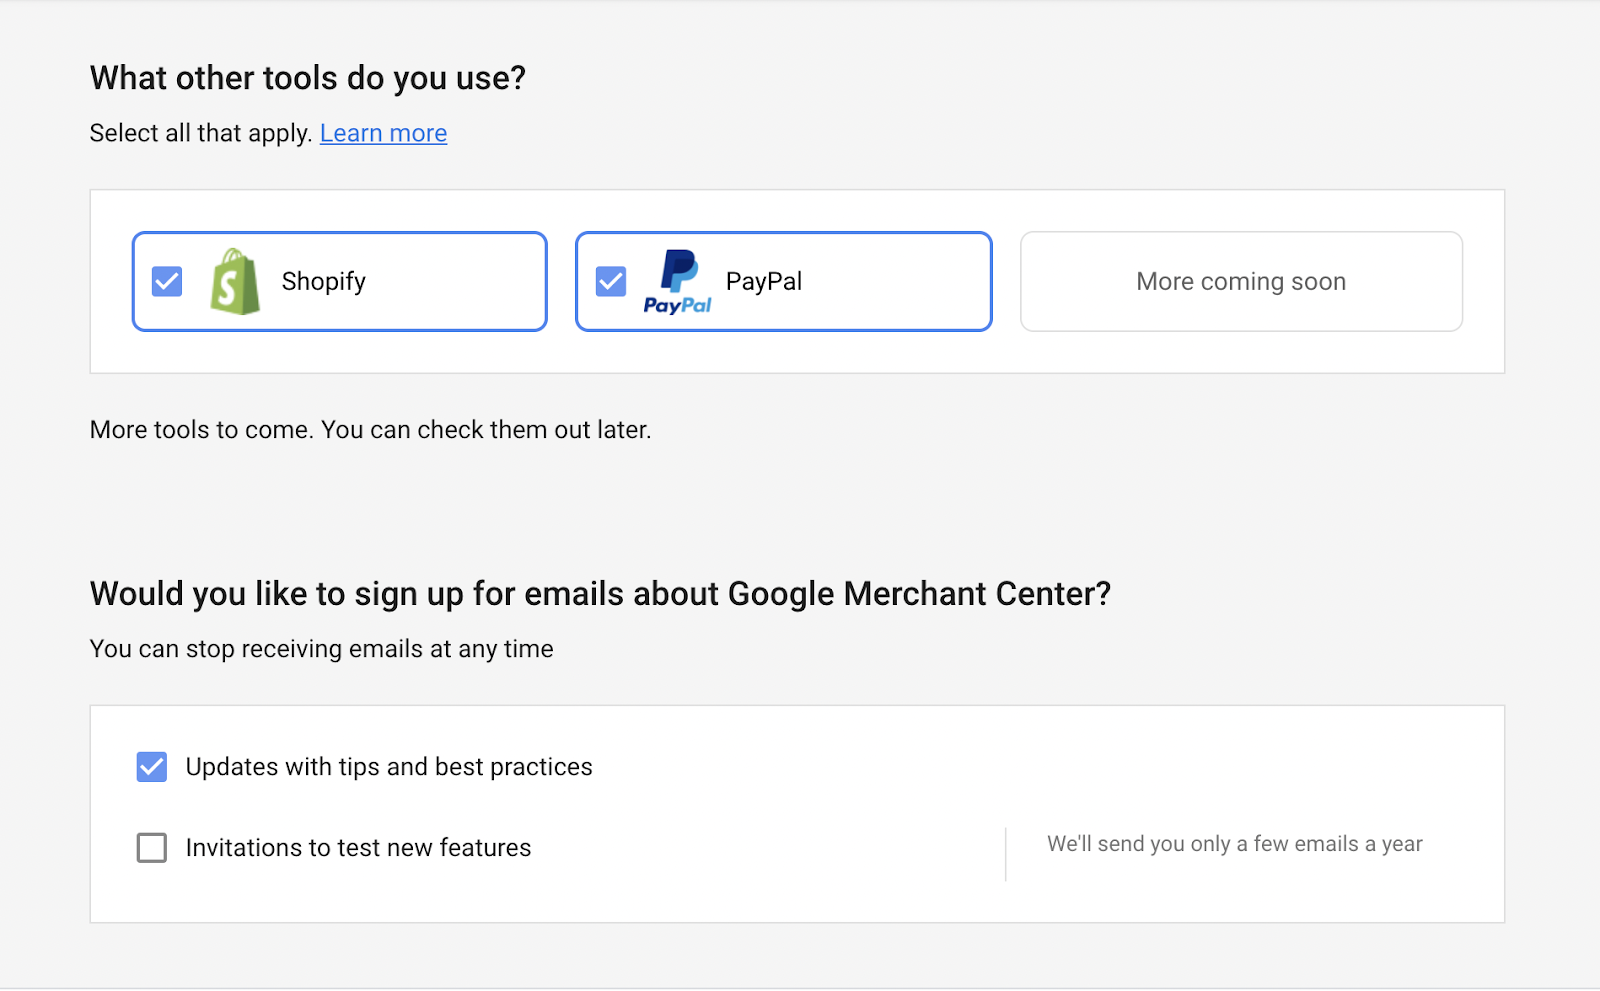 Select your tools and your Google Merchant Center email preferences